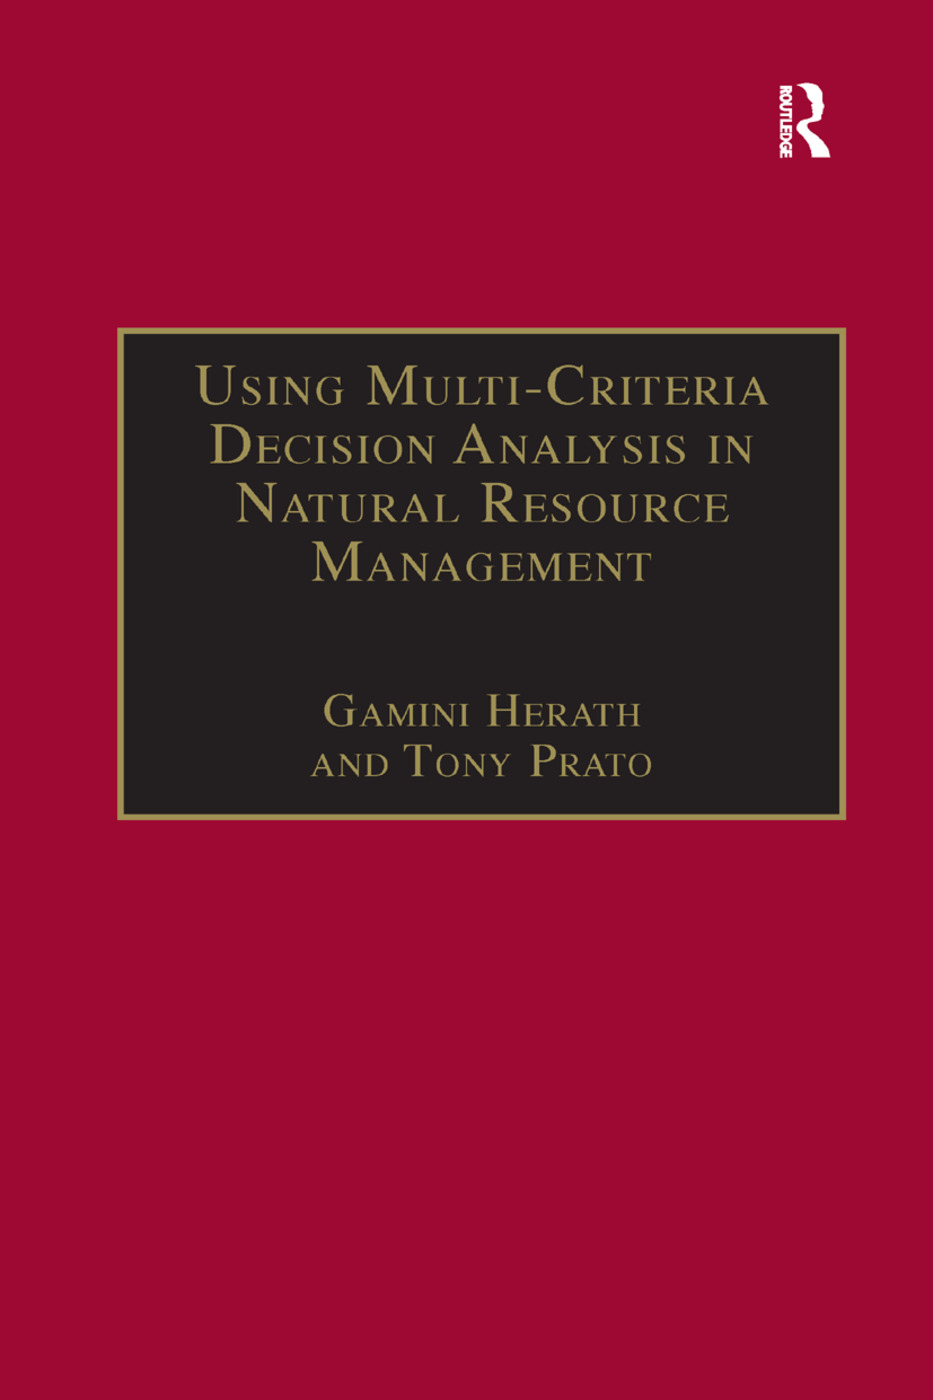 Using Multi-Criteria Decision Analysis in Natural Resource Management: 1st Edition (Paperback) book cover